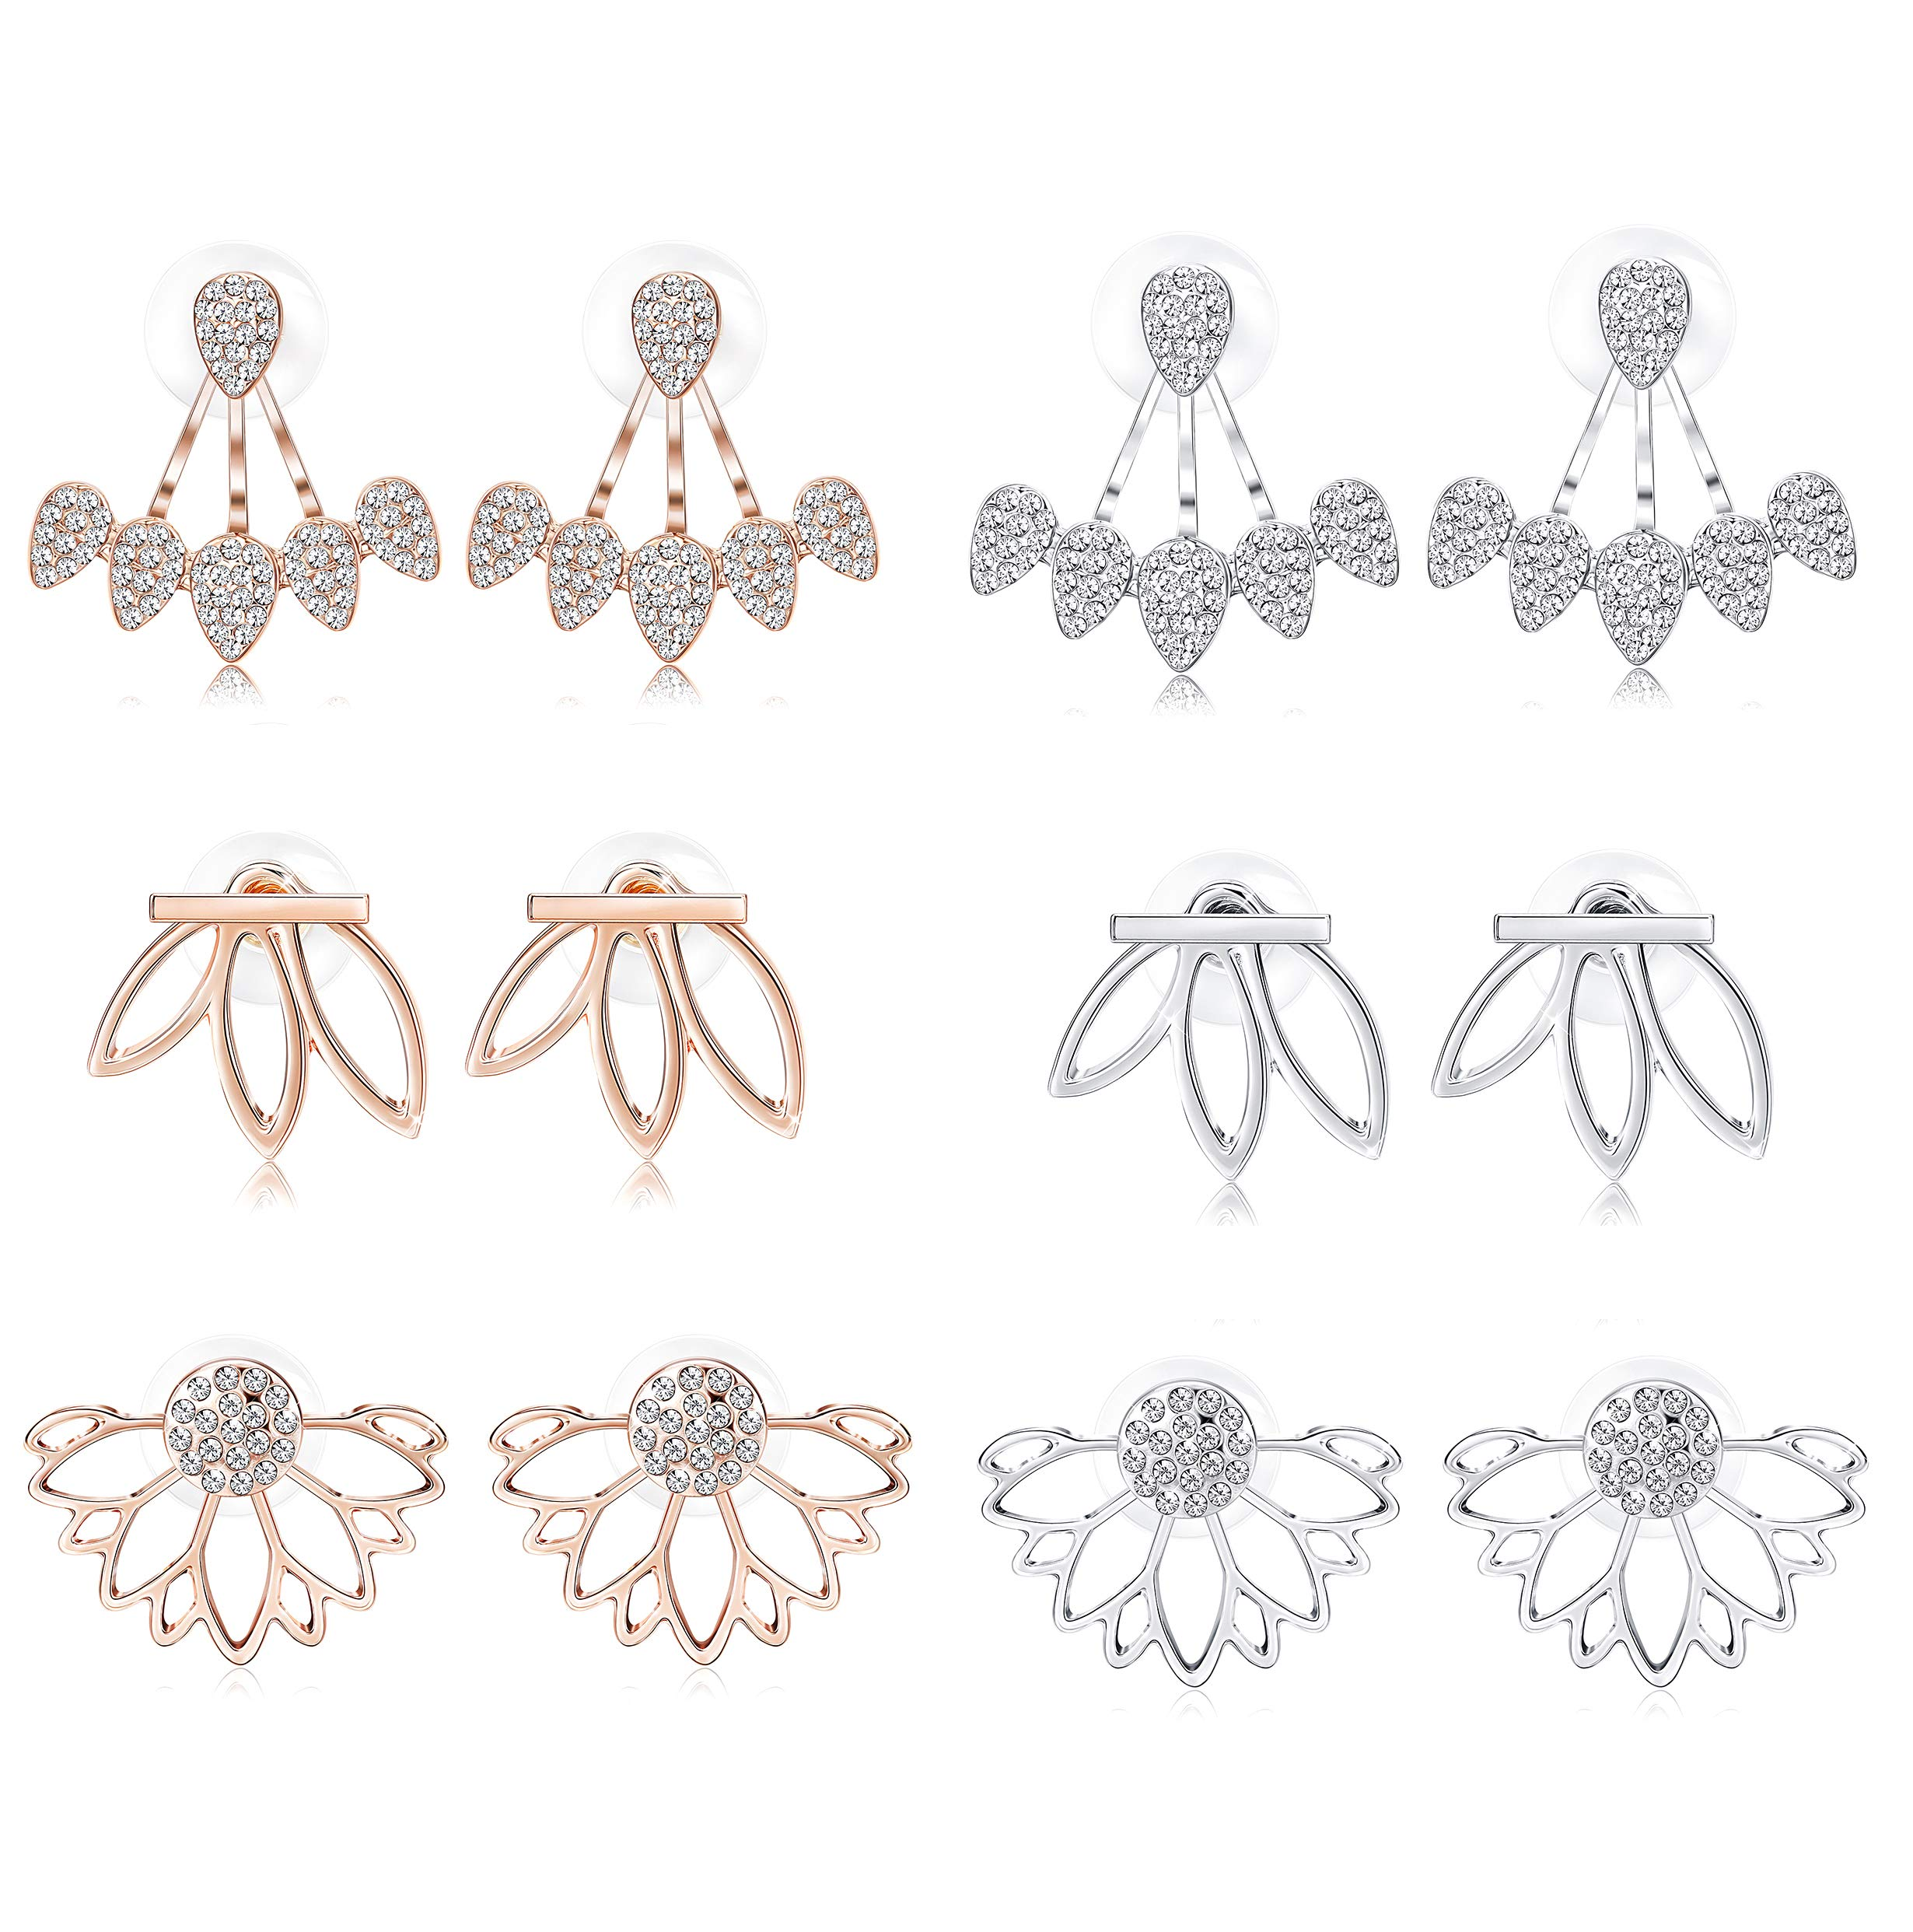 LOYALLOOK Hollow Lotus Earrings for Women Girls Fashion Flower Ear Jackets Crystal Simple Chic Stud Earrings Bar Stud Earrings Cuff Earrings Set (6 Pairs)